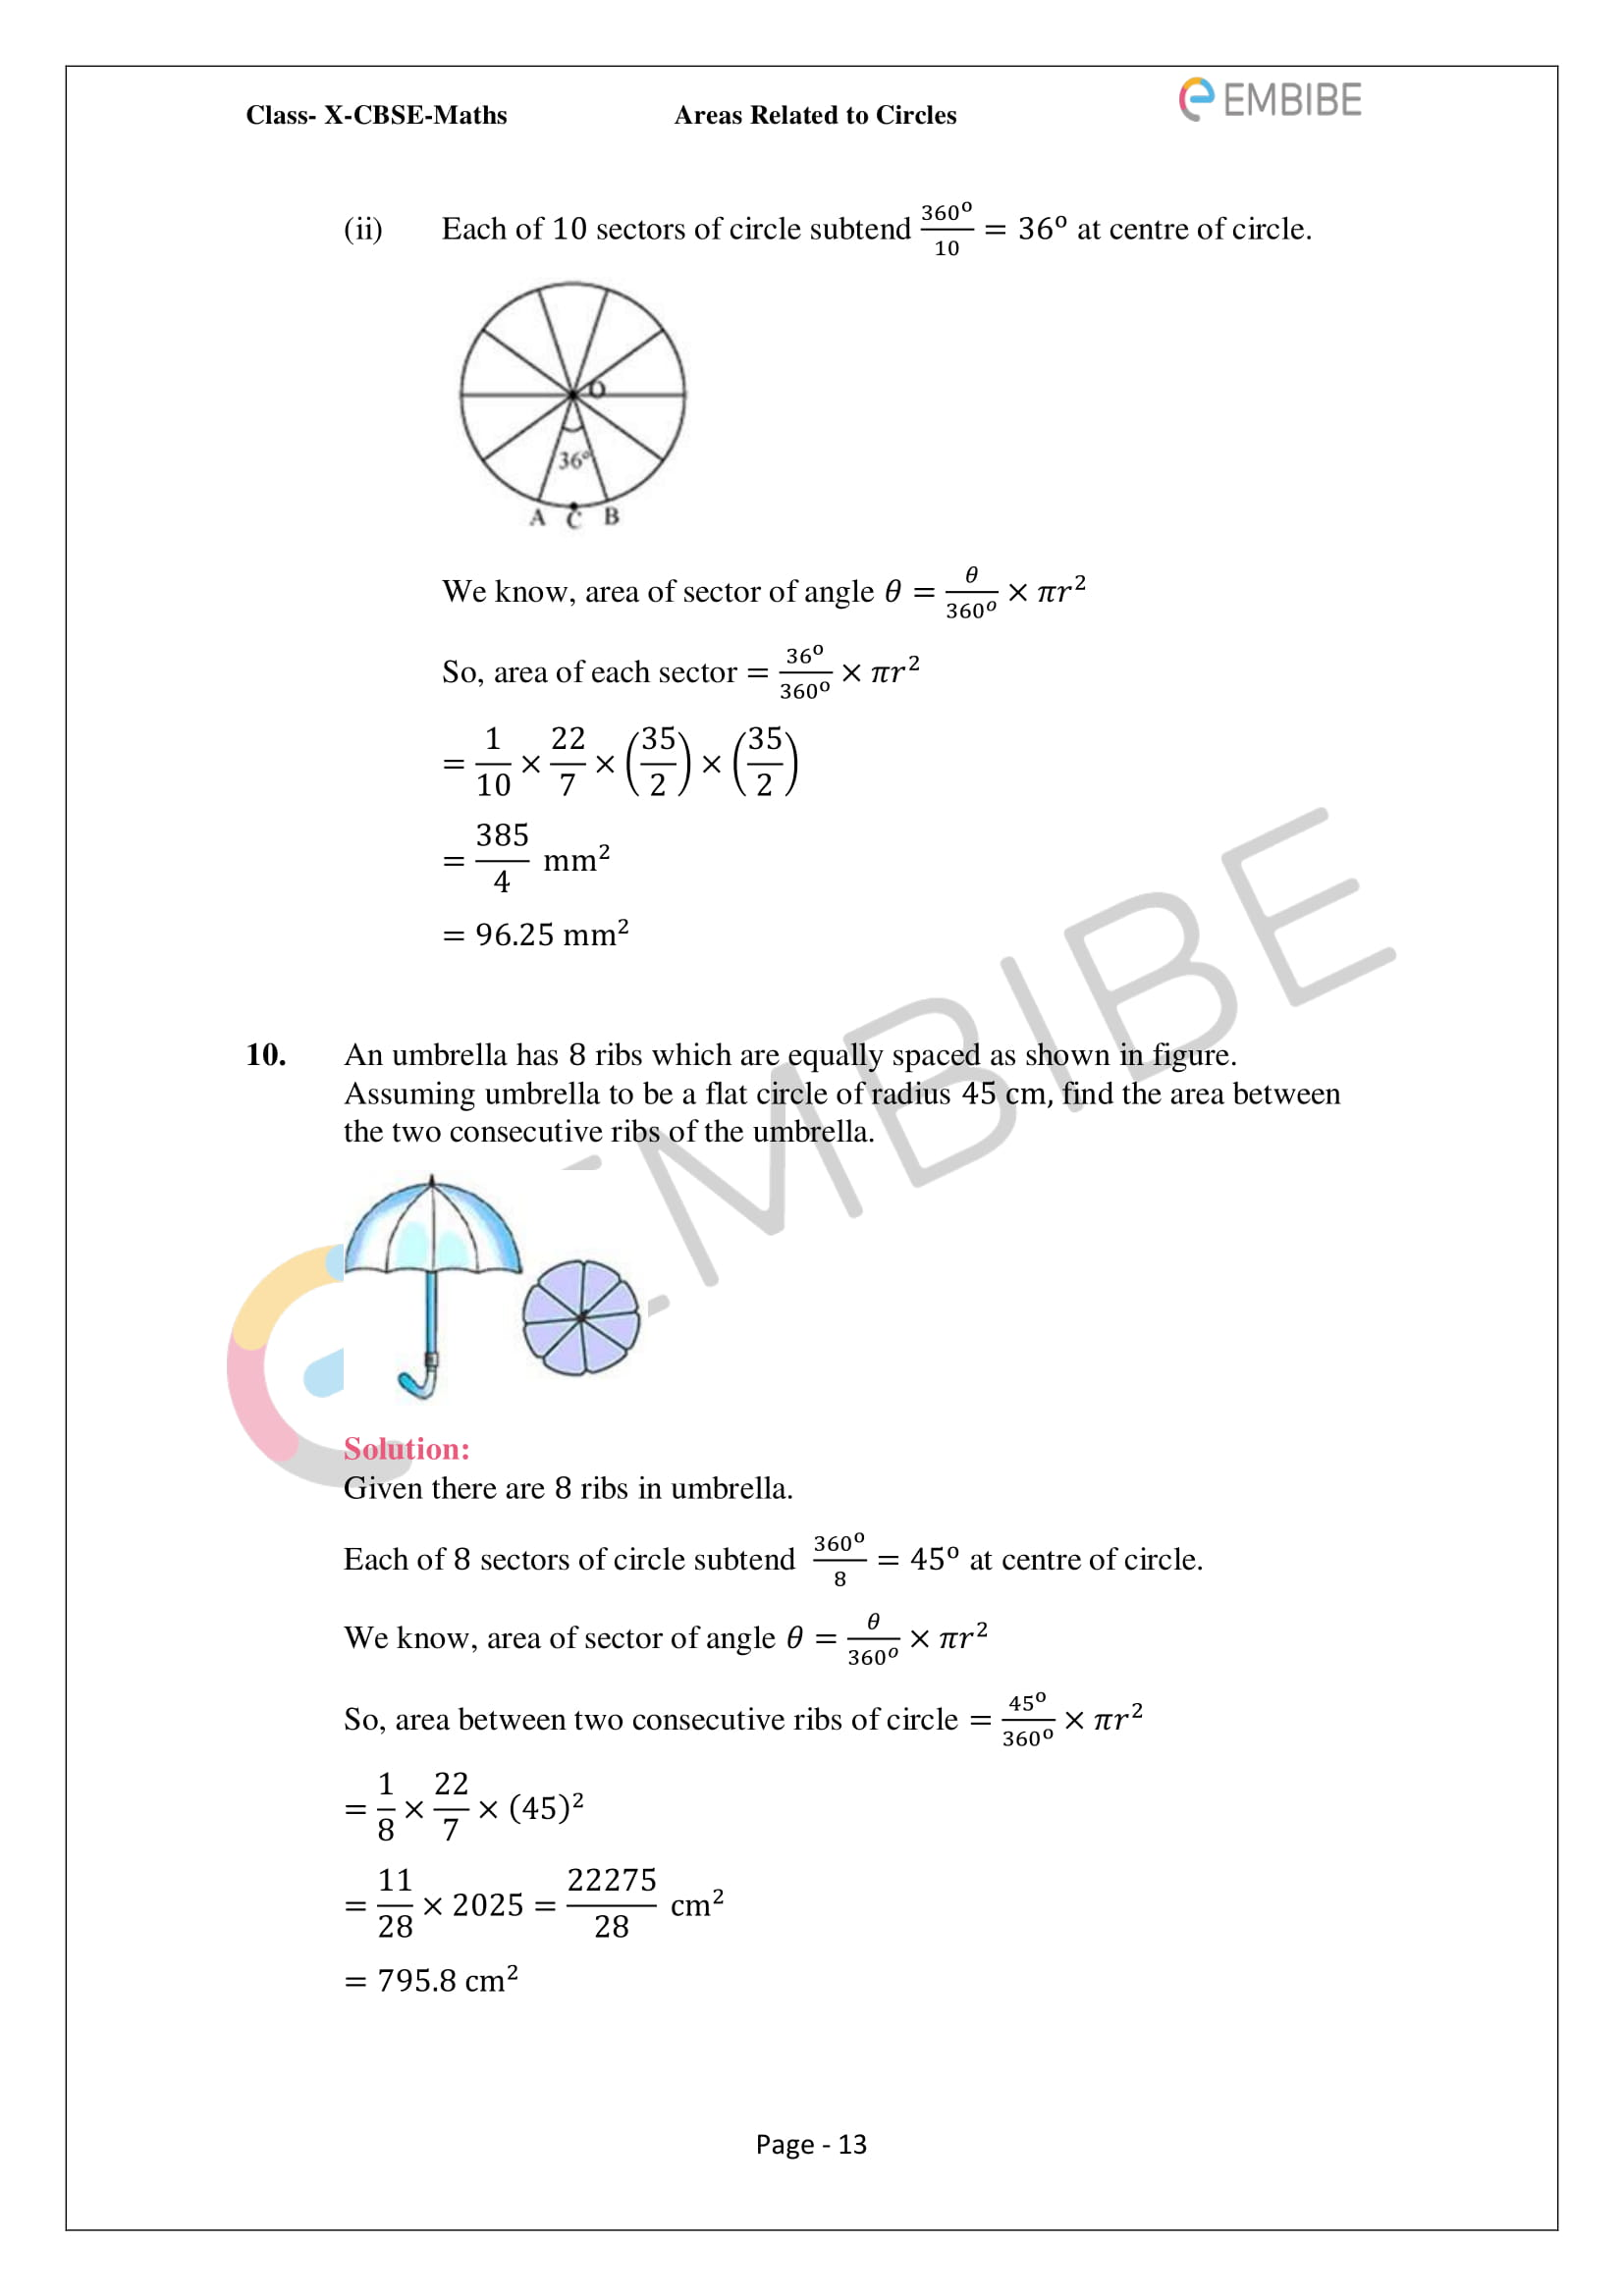 CBSE NCERT Solutions For Class 10 Maths Chapter 12 - Areas Related To Circle - 13